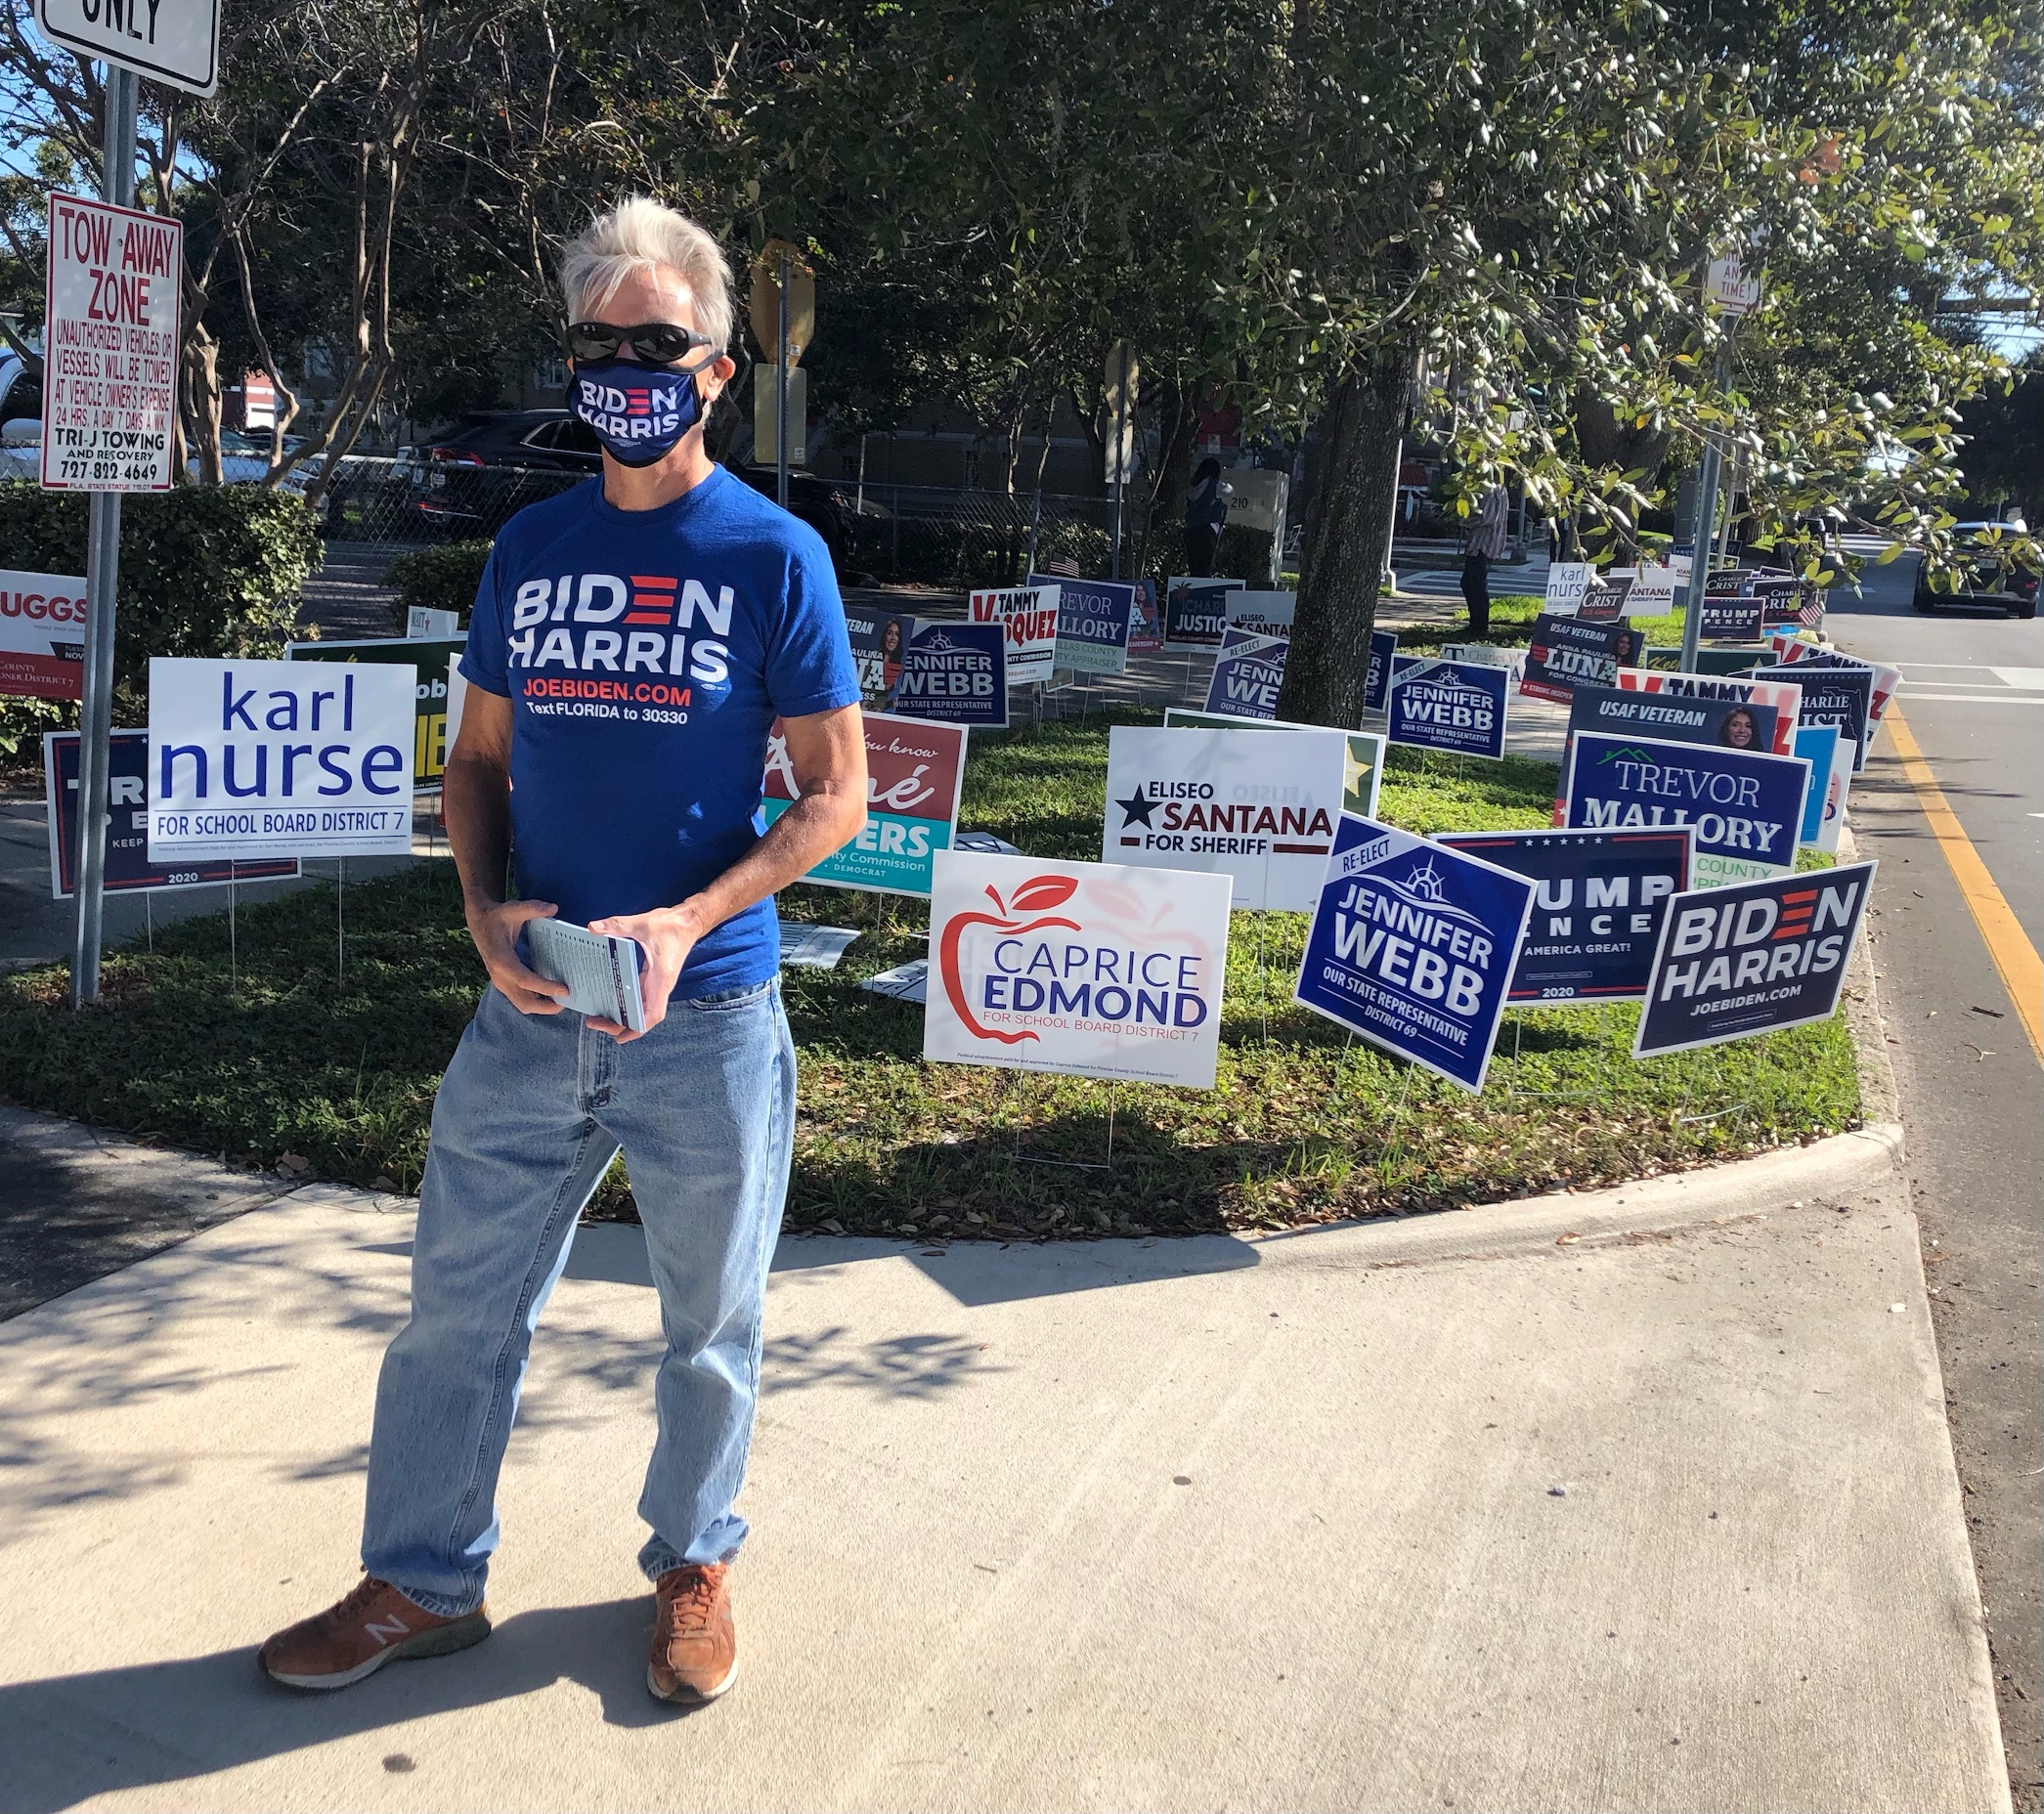 Robert, originally British but a registered US voter for almost a decade, stands outside a polling place to show his support for presidential nominee Joe Biden on 3 November (MEE/Sheren Khalel)